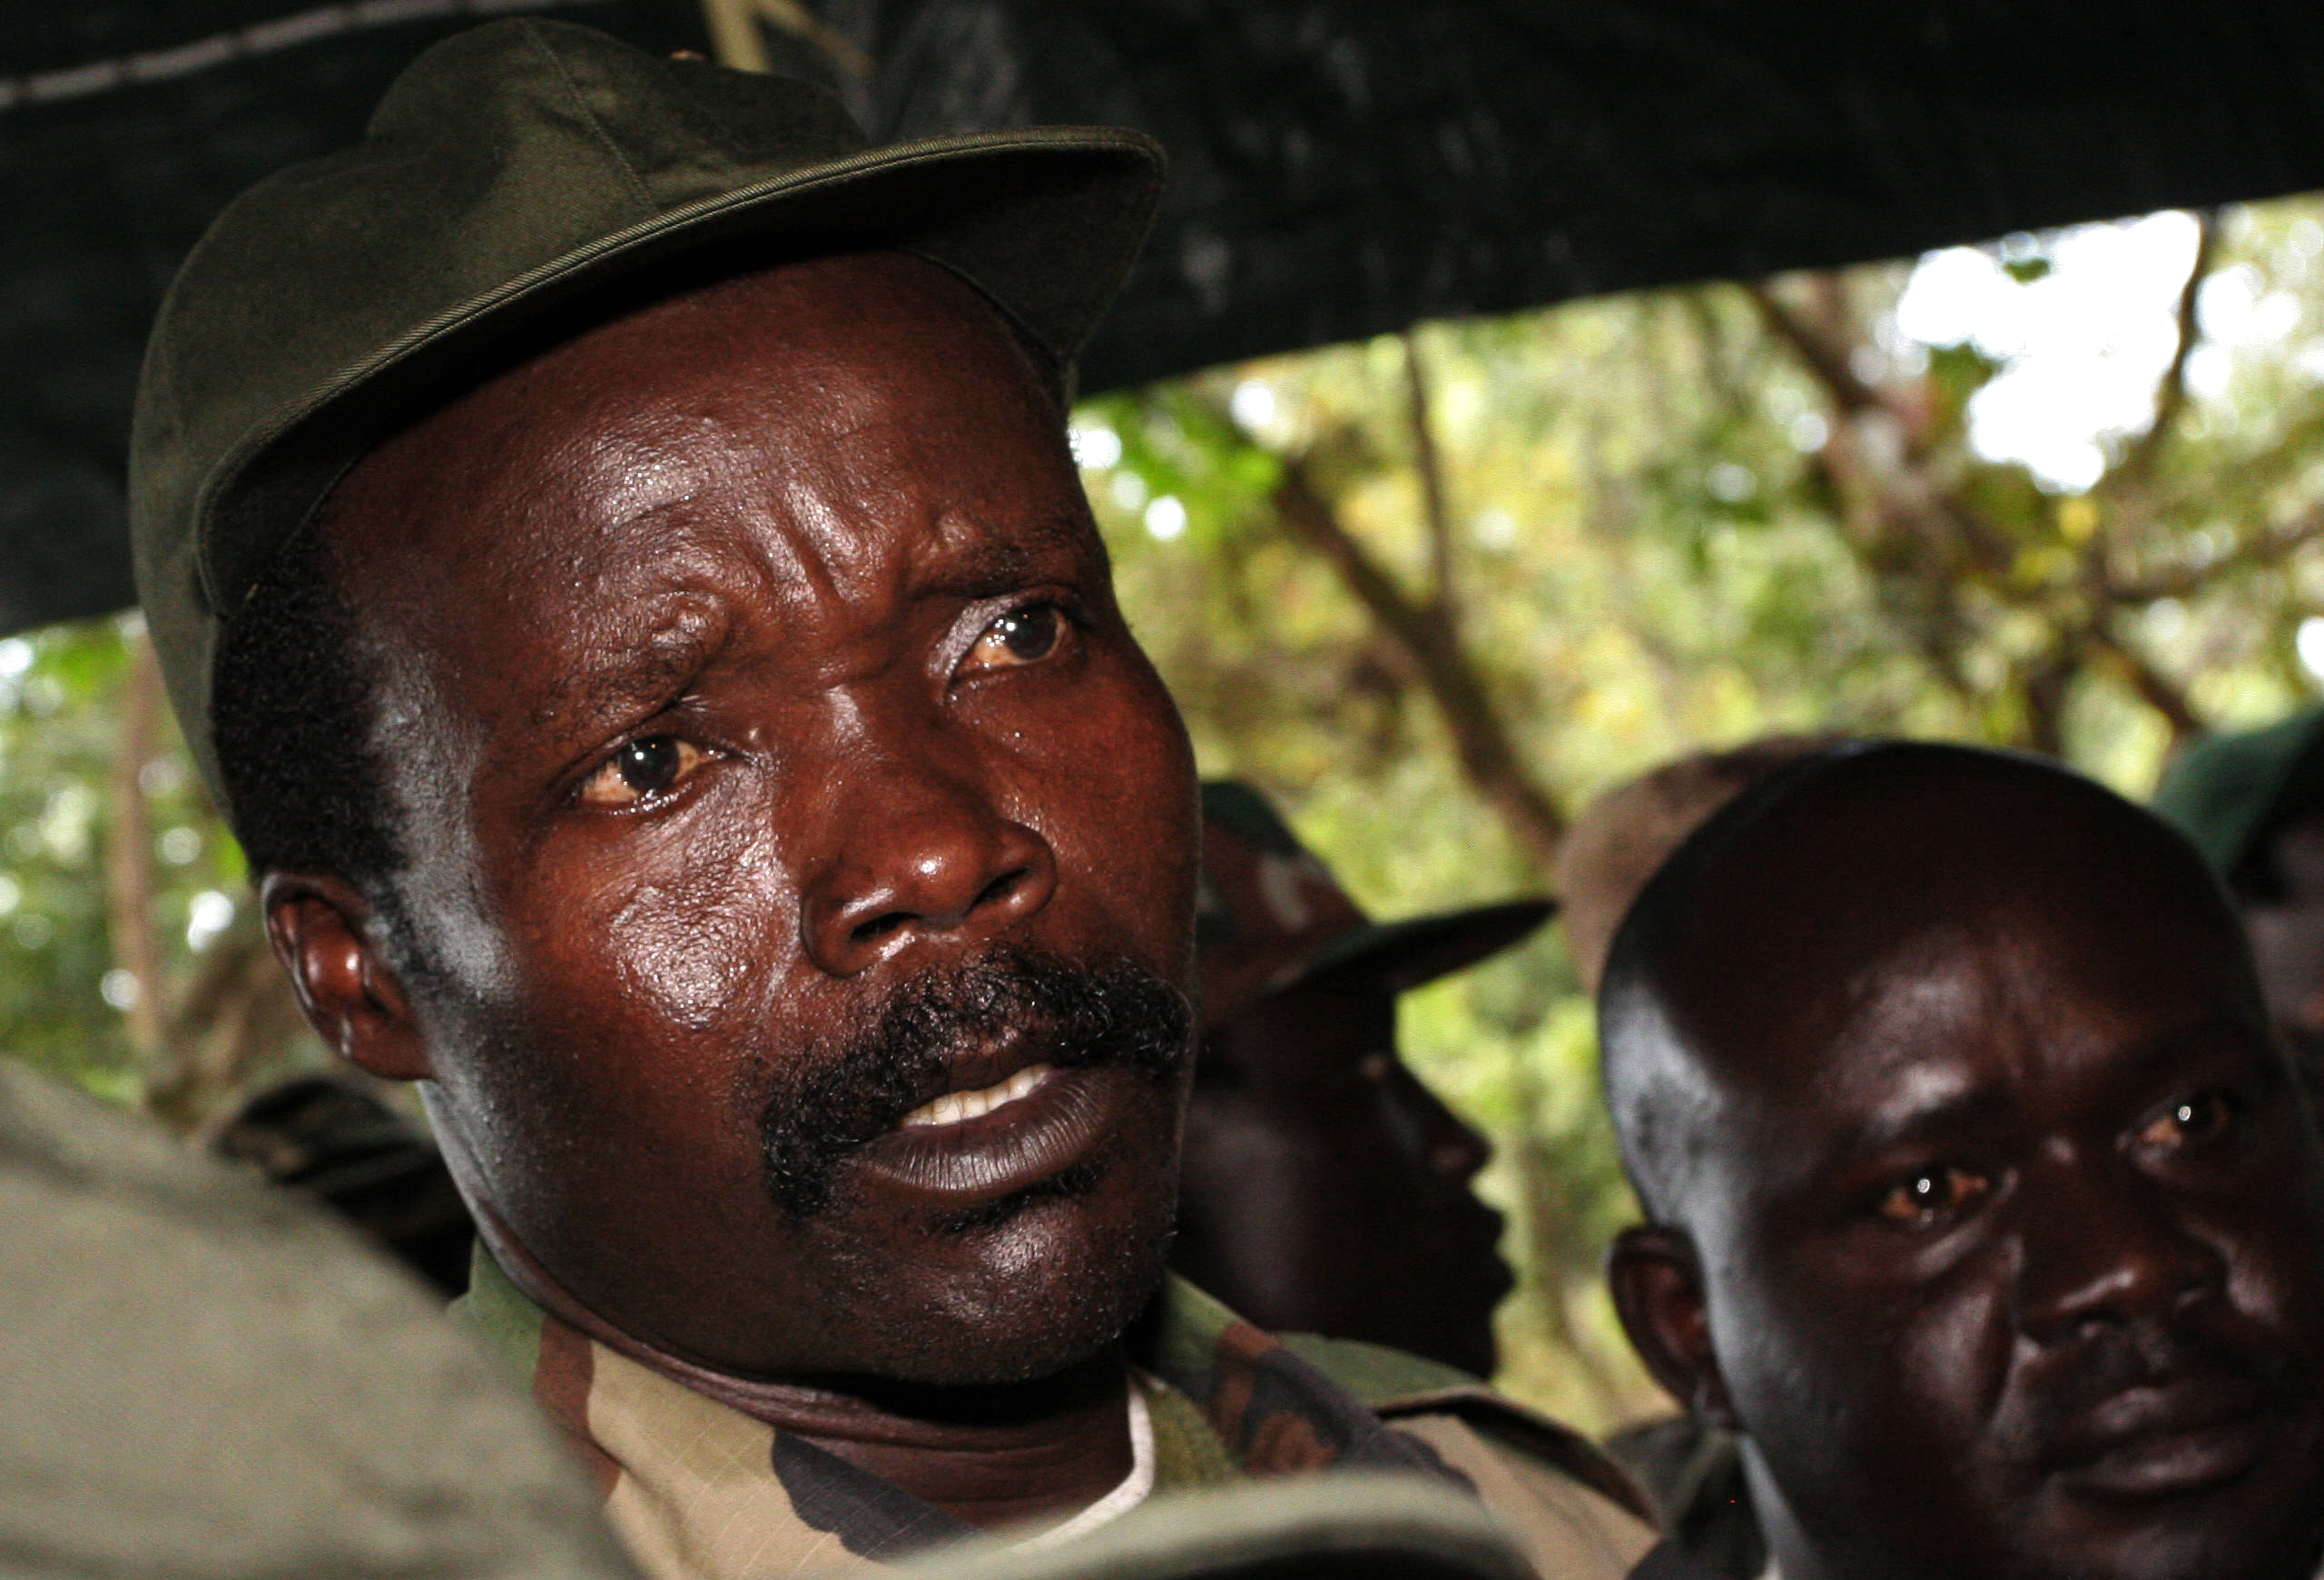 Joseph Kony of the Lord's Resistance Army answers journalists' questions in Ri-Kwamba, Sudan, on Nov. 12, 2006